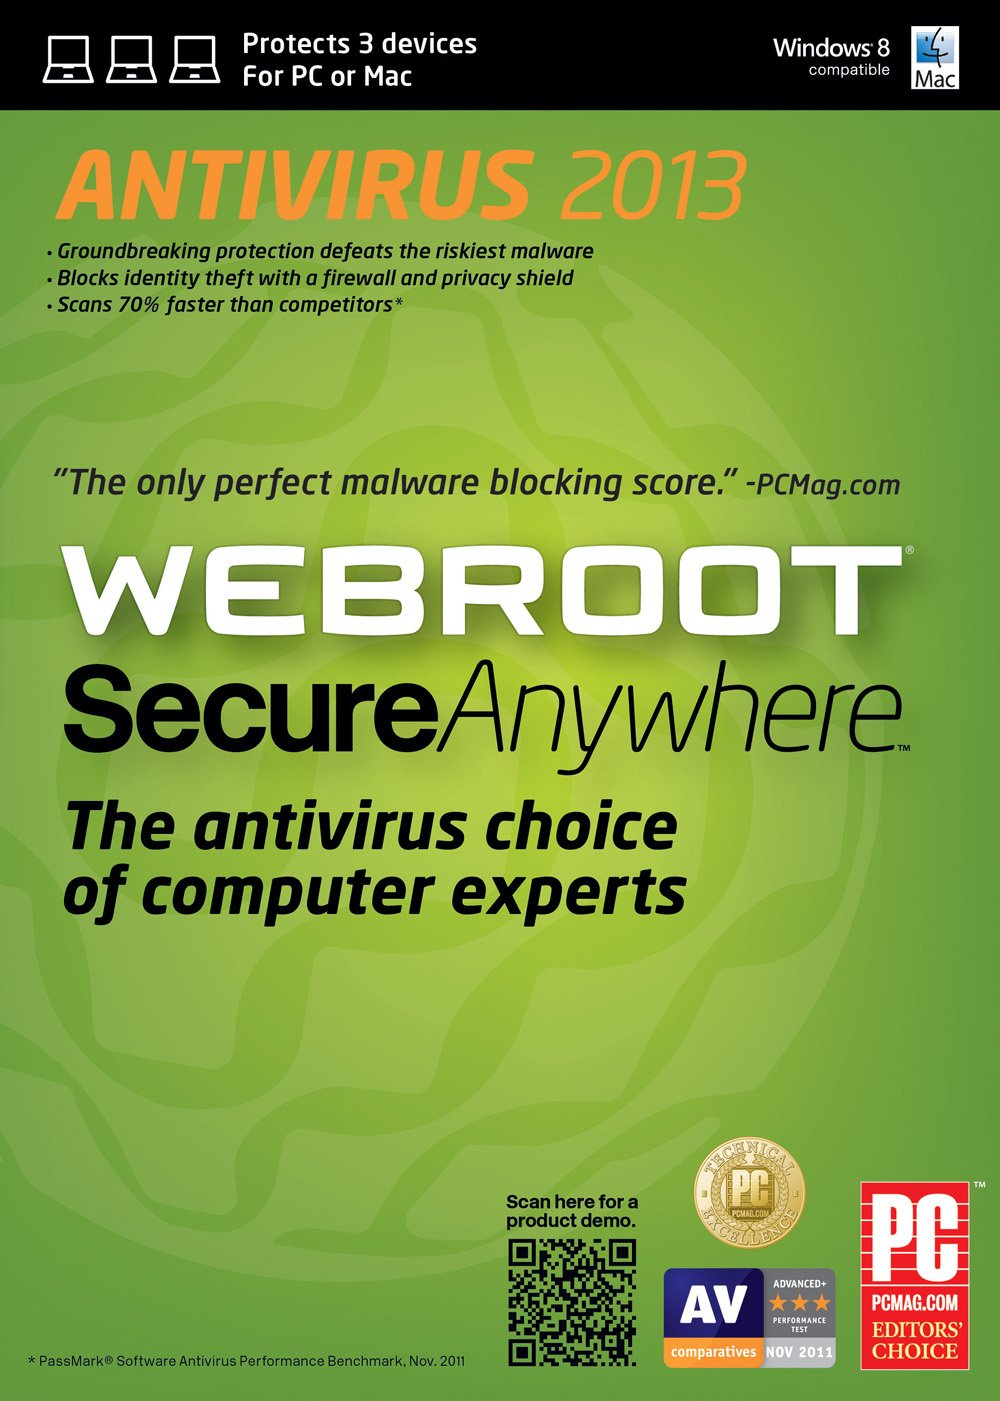 During the Offer Period, you will receive $ off the purchase price (excluding applicable taxes) when you purchase a 1 year / 3 device subscription to Webroot SecureAnywhere® AntiVirus, and $ off the purchase price (excluding applicable taxes) when you purchase a 1 year / 3 device subscription to Webroot® WiFi Security.